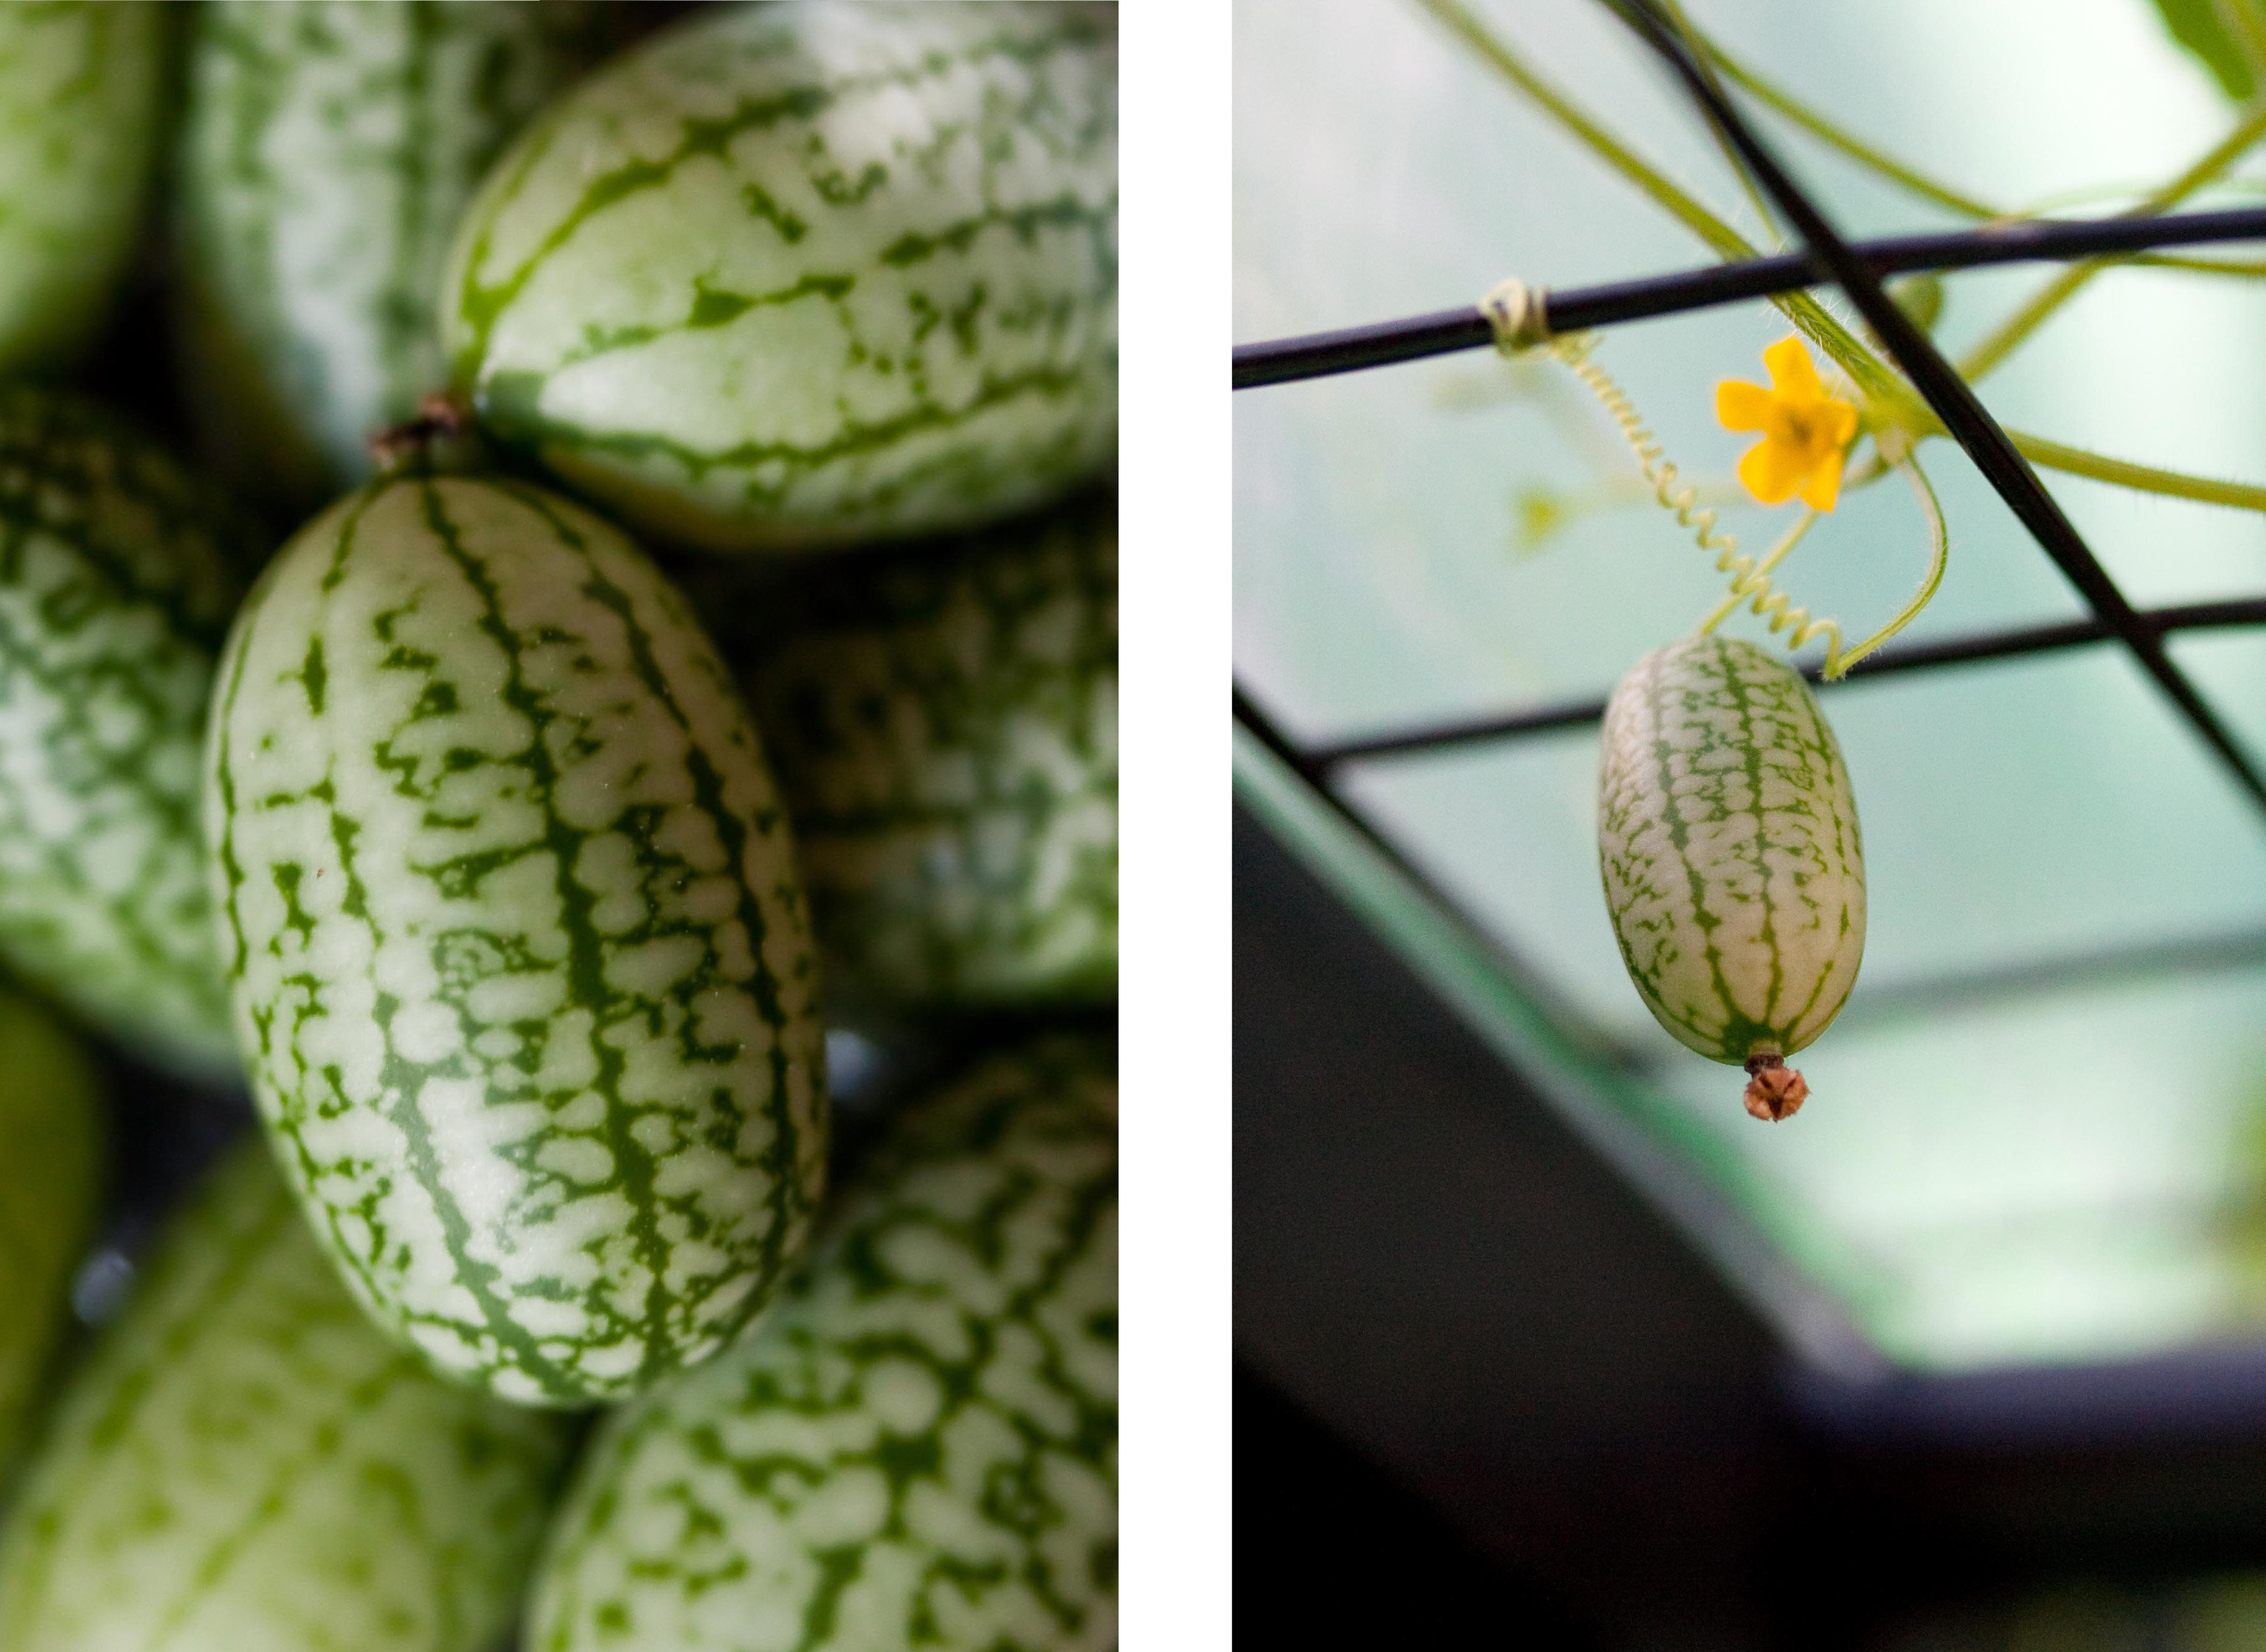 Food + Drink green flora plant fruit leaf botany produce food close up land plant flower macro photography branch flowering plant gourd different